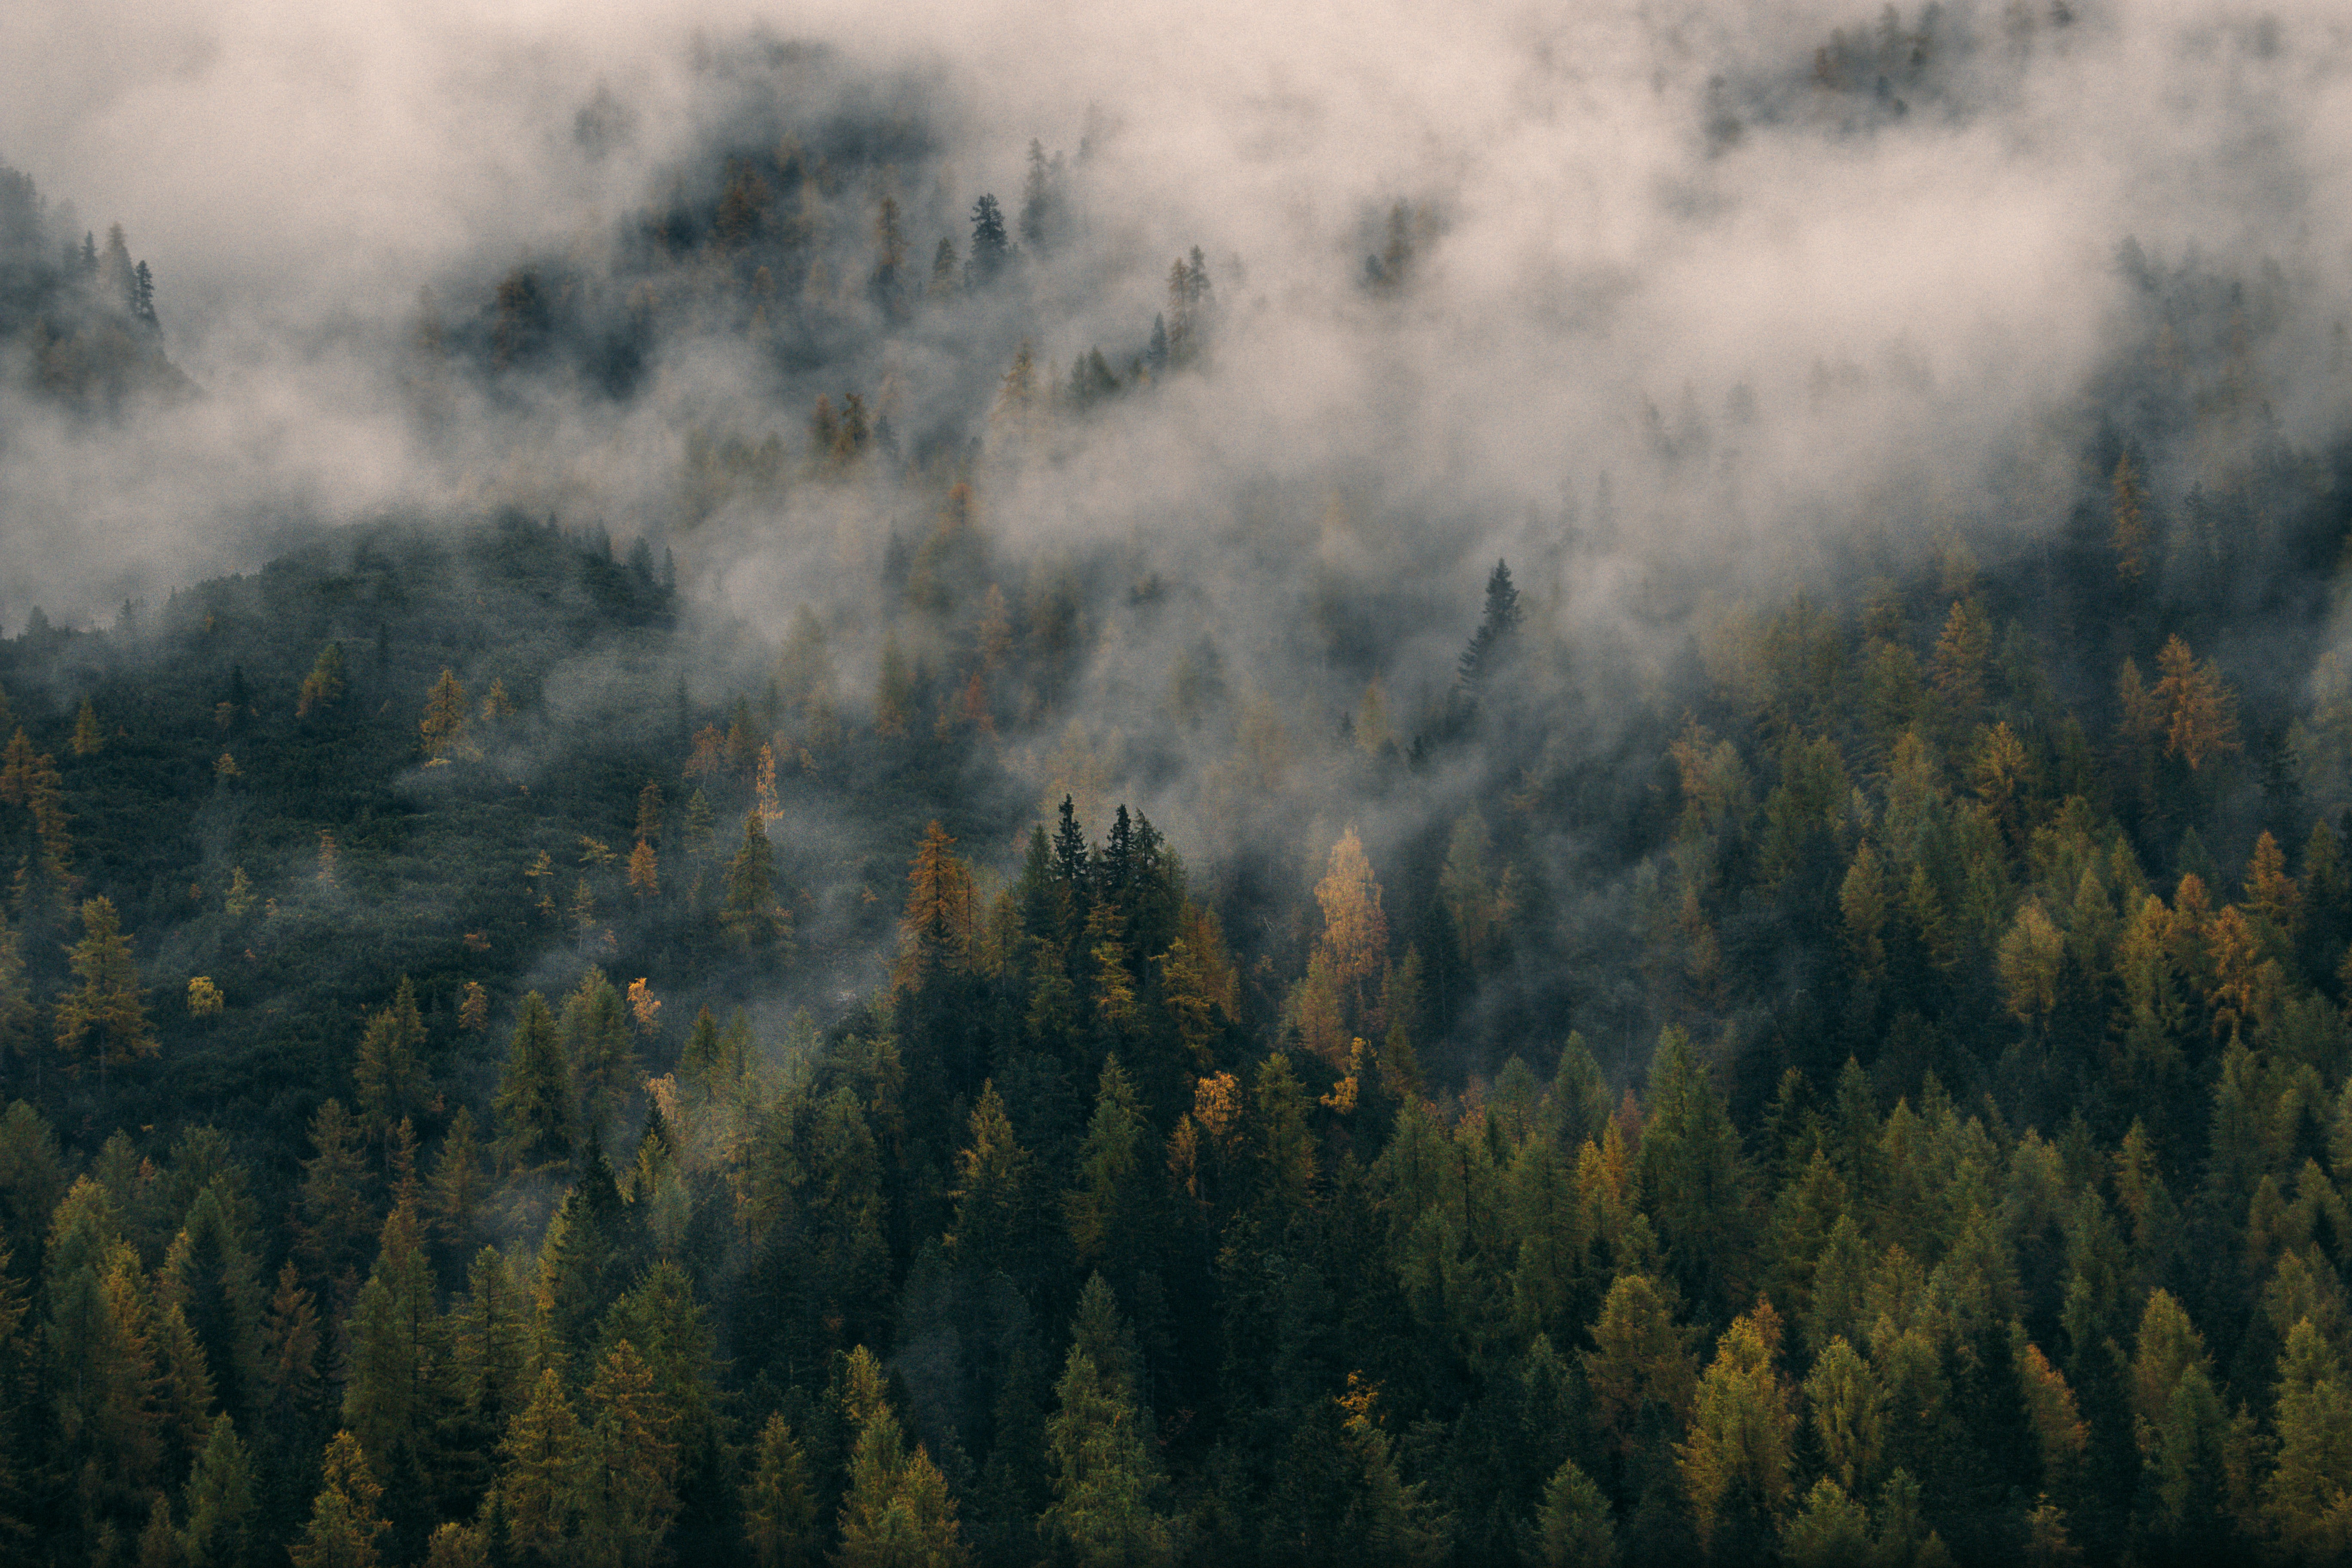 green trees covering with fog during daytime